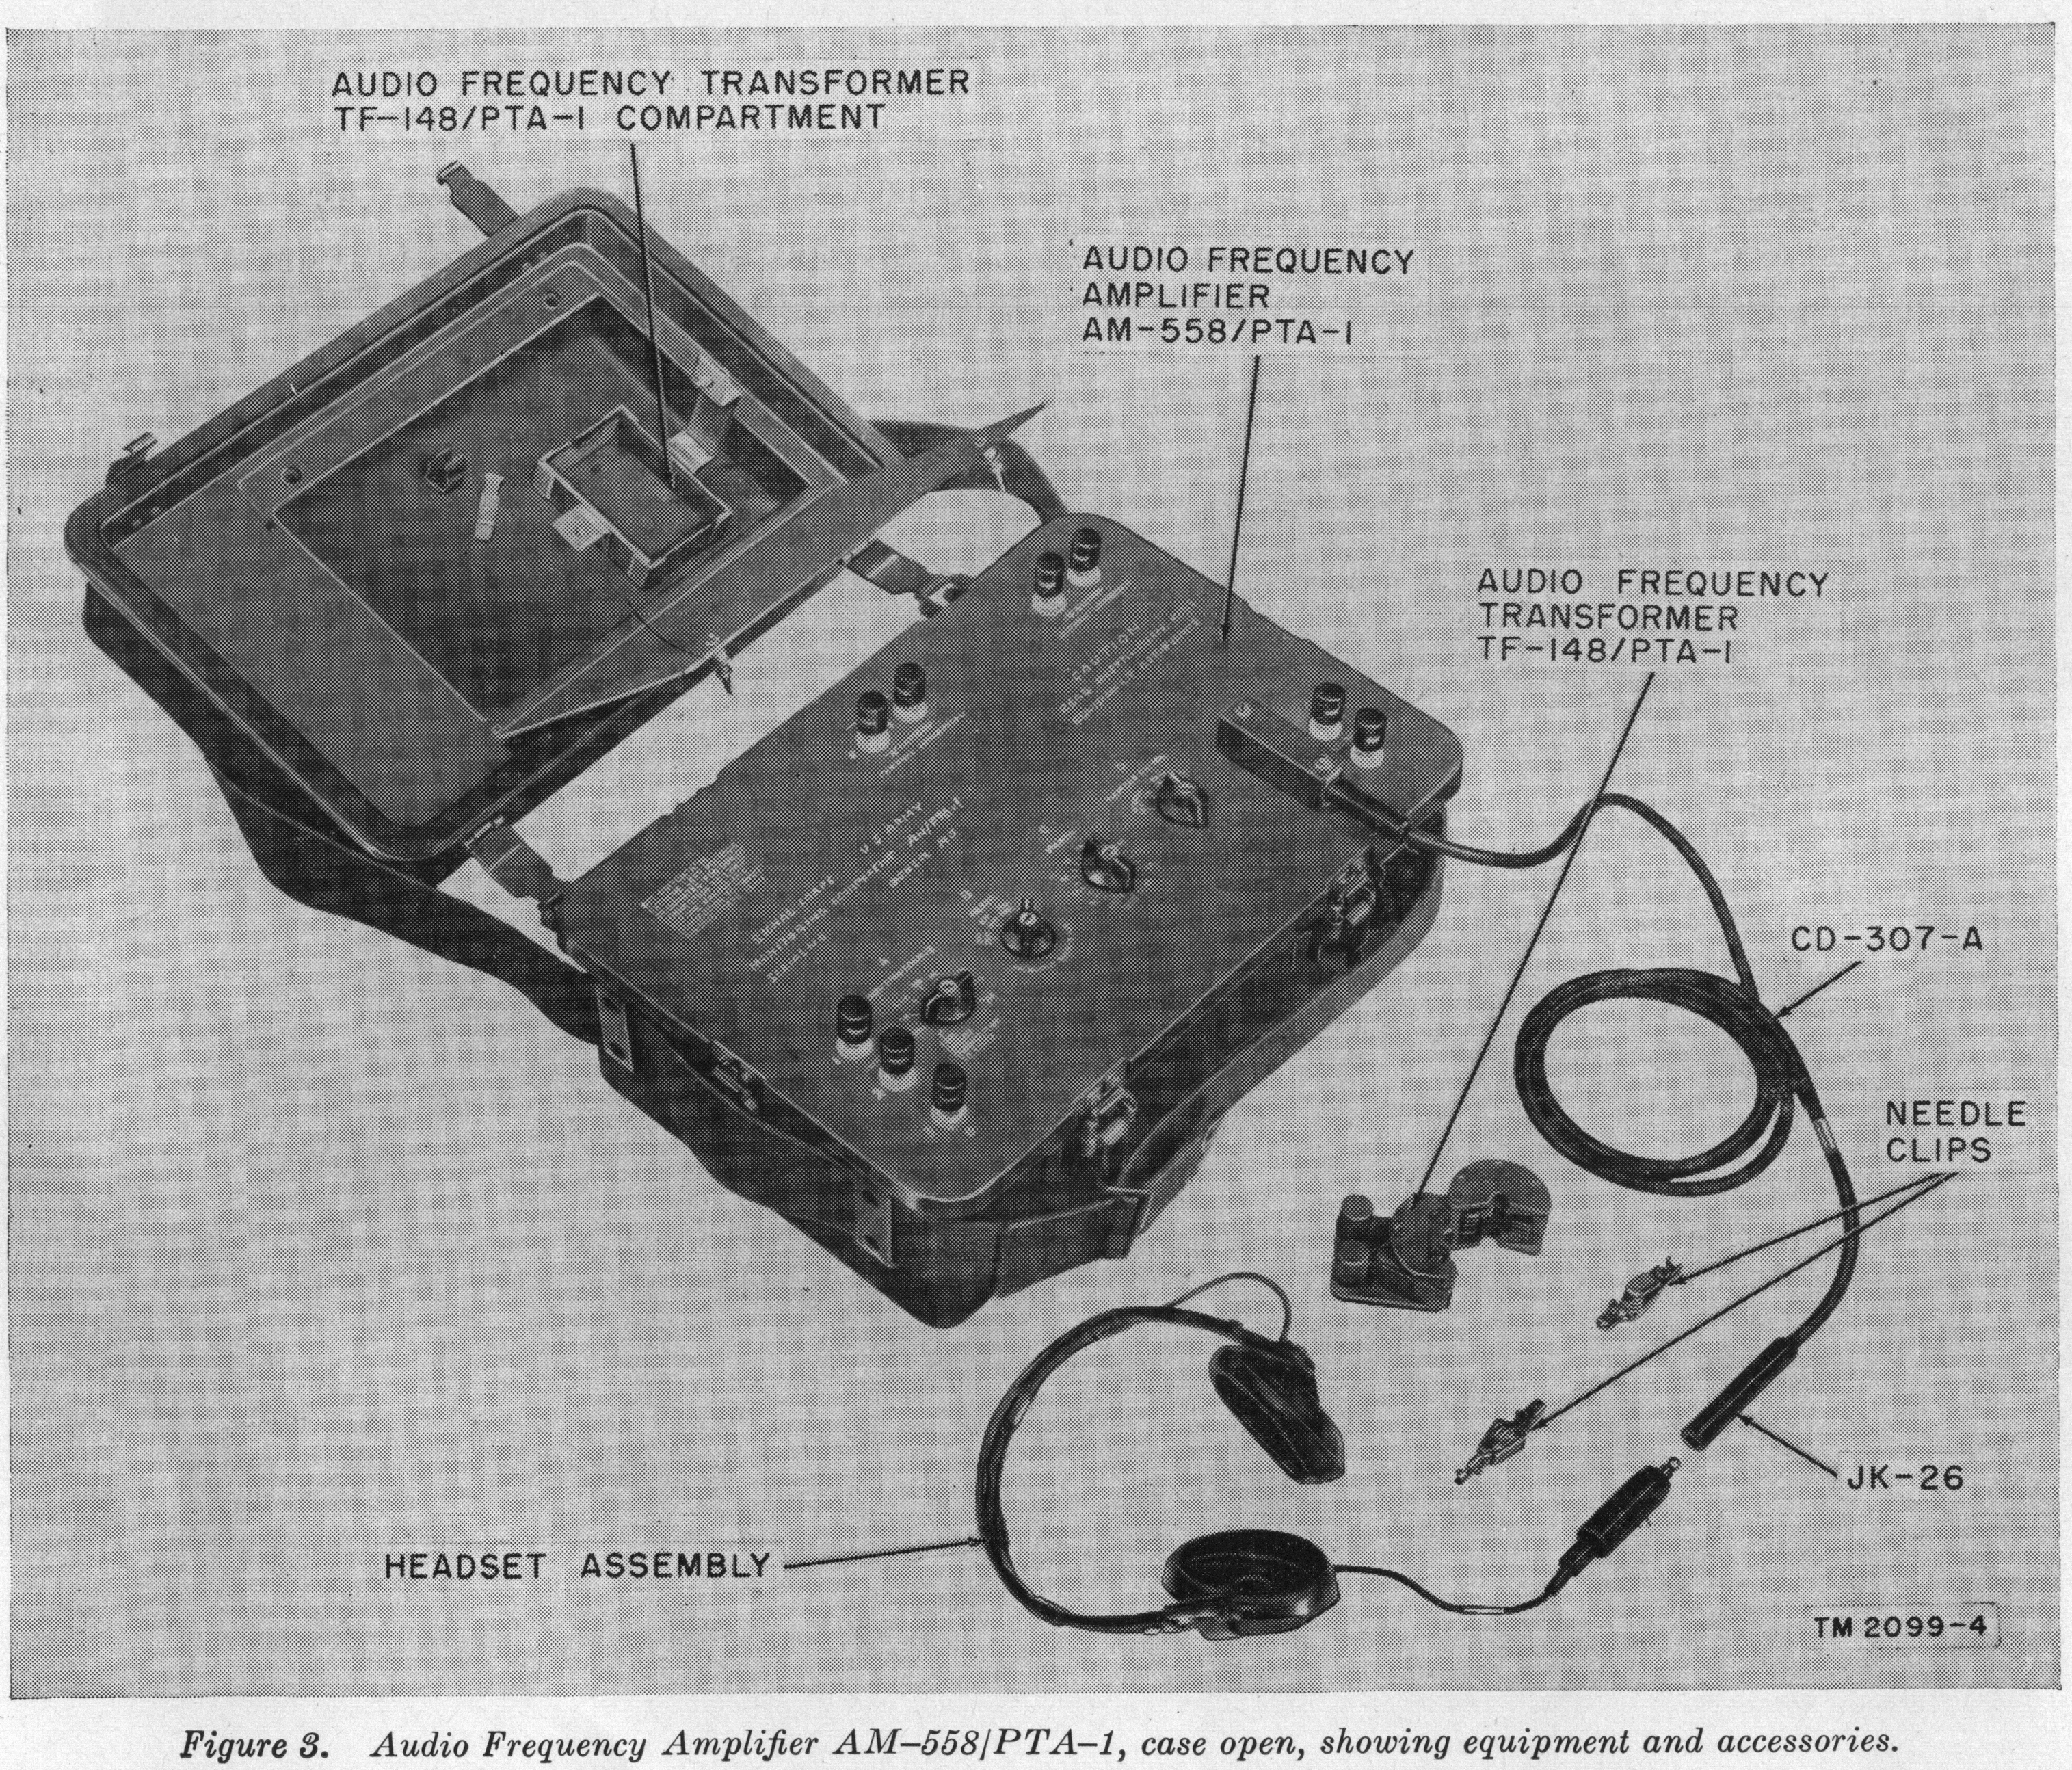 Audio Frequency Amplifier AM-558/PTA-1, case open, showing equipment and accessories.